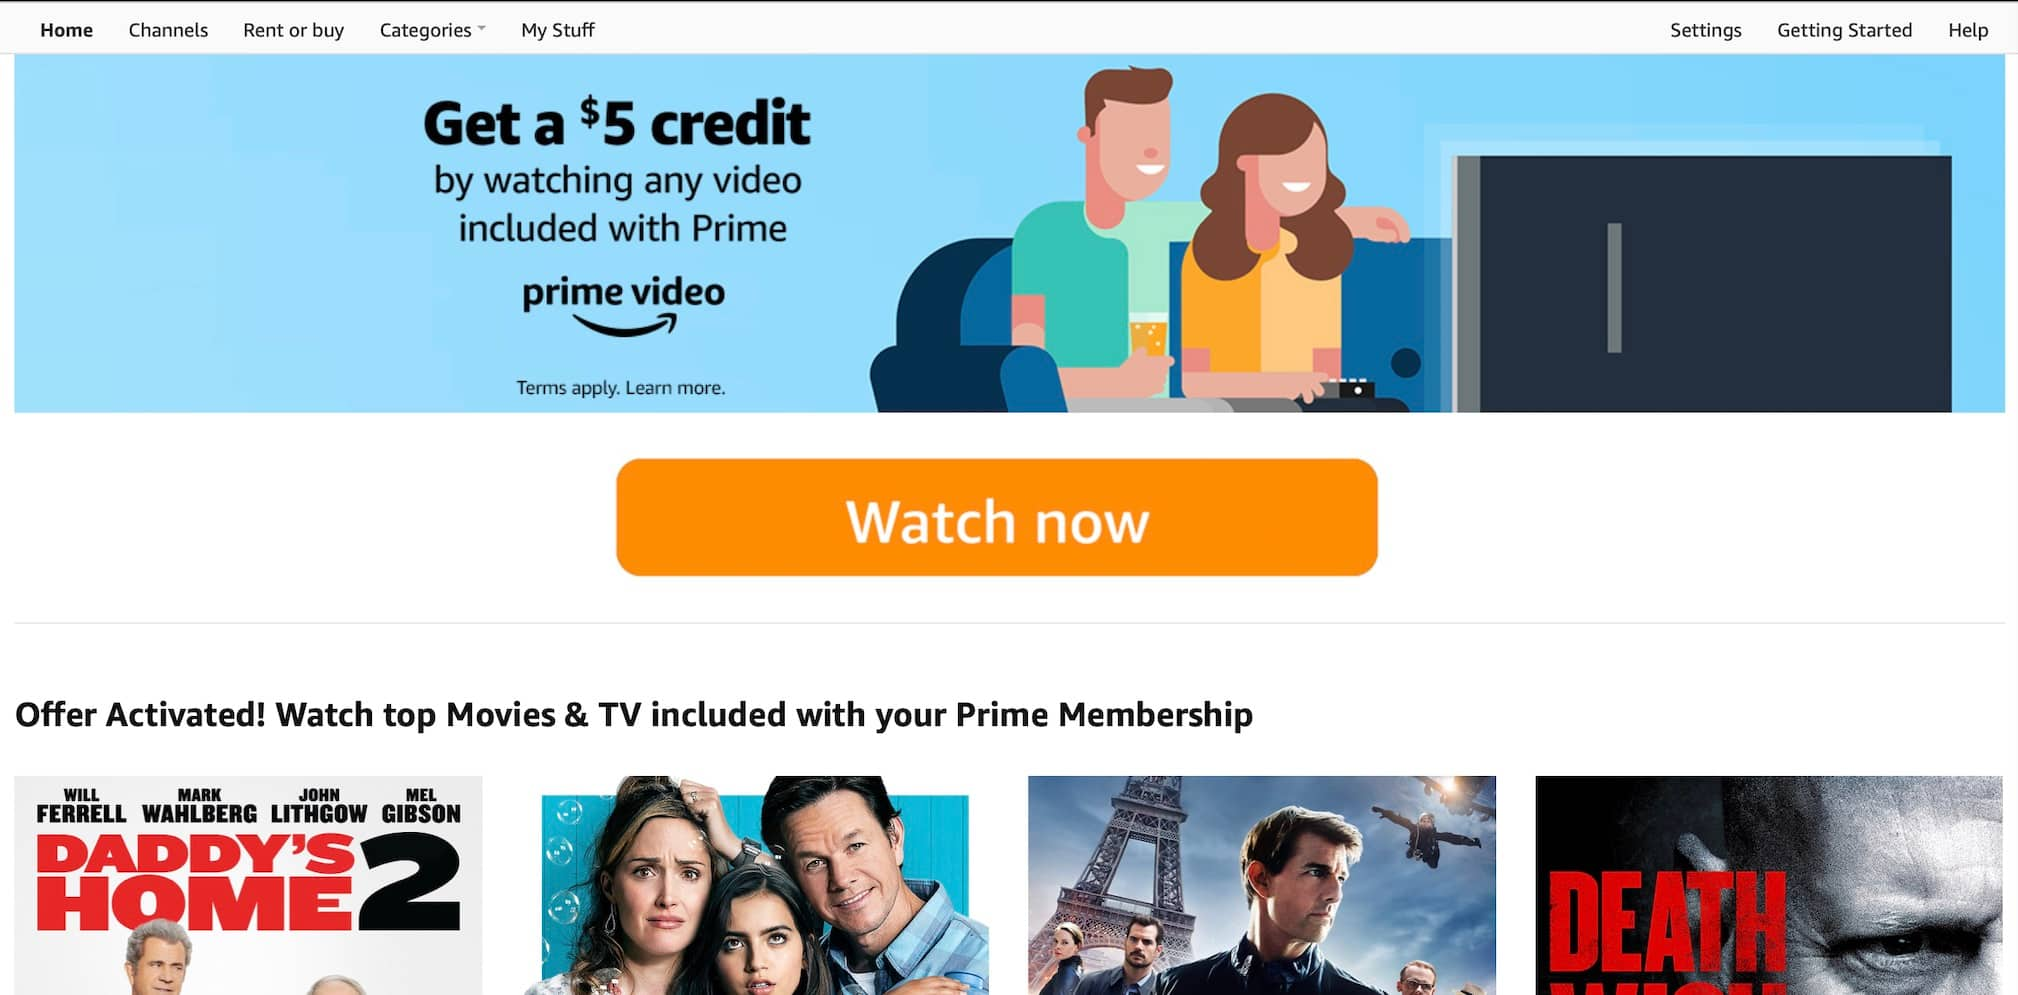 [YMMV] Targeted - Free $5 Credit for watching any video included with Prime $0.02